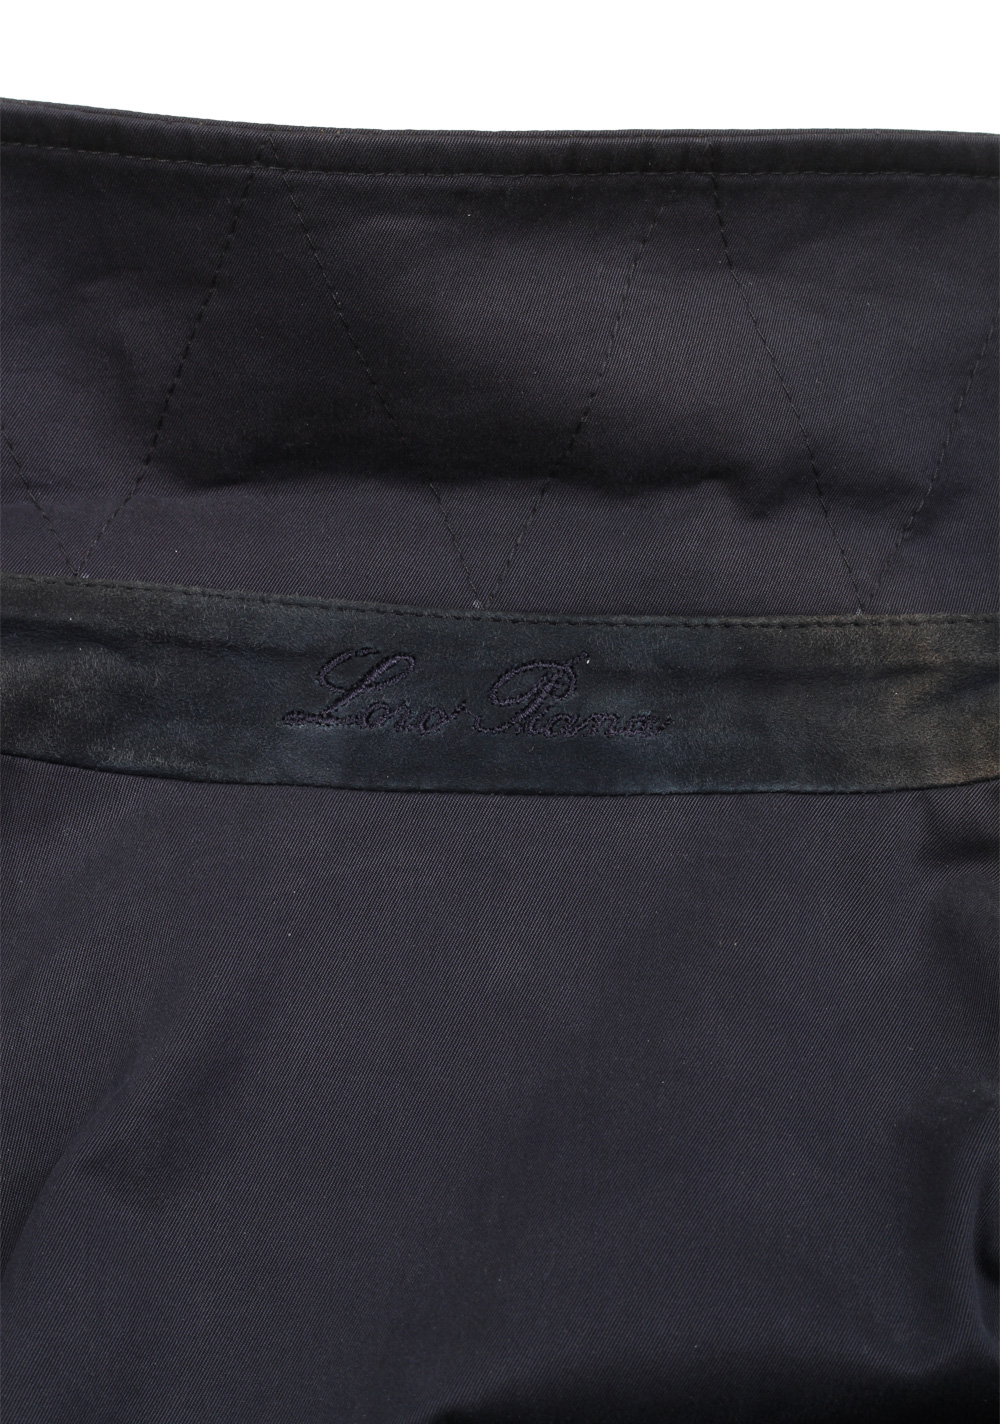 Loro Piana Blue Double Breasted Coat Size L / 42 U.S. Outerwear | Costume Limité